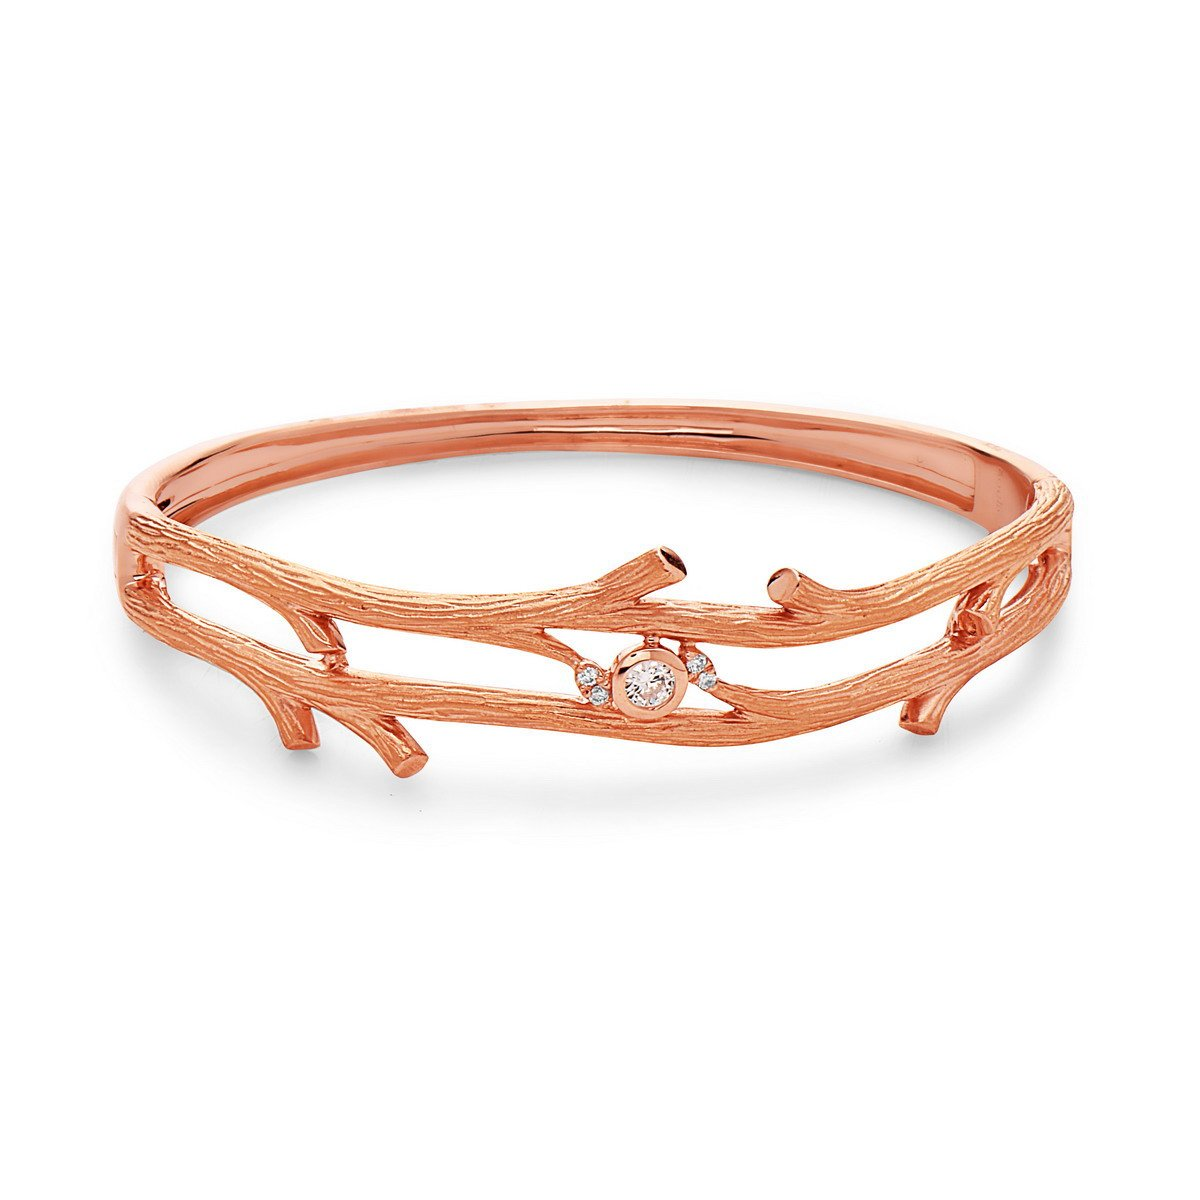 18K Rose Gold 0.15 CTTW Diamond Twig Style Bangle Bracelet (H Color, SI1 Clarity) by Socheec